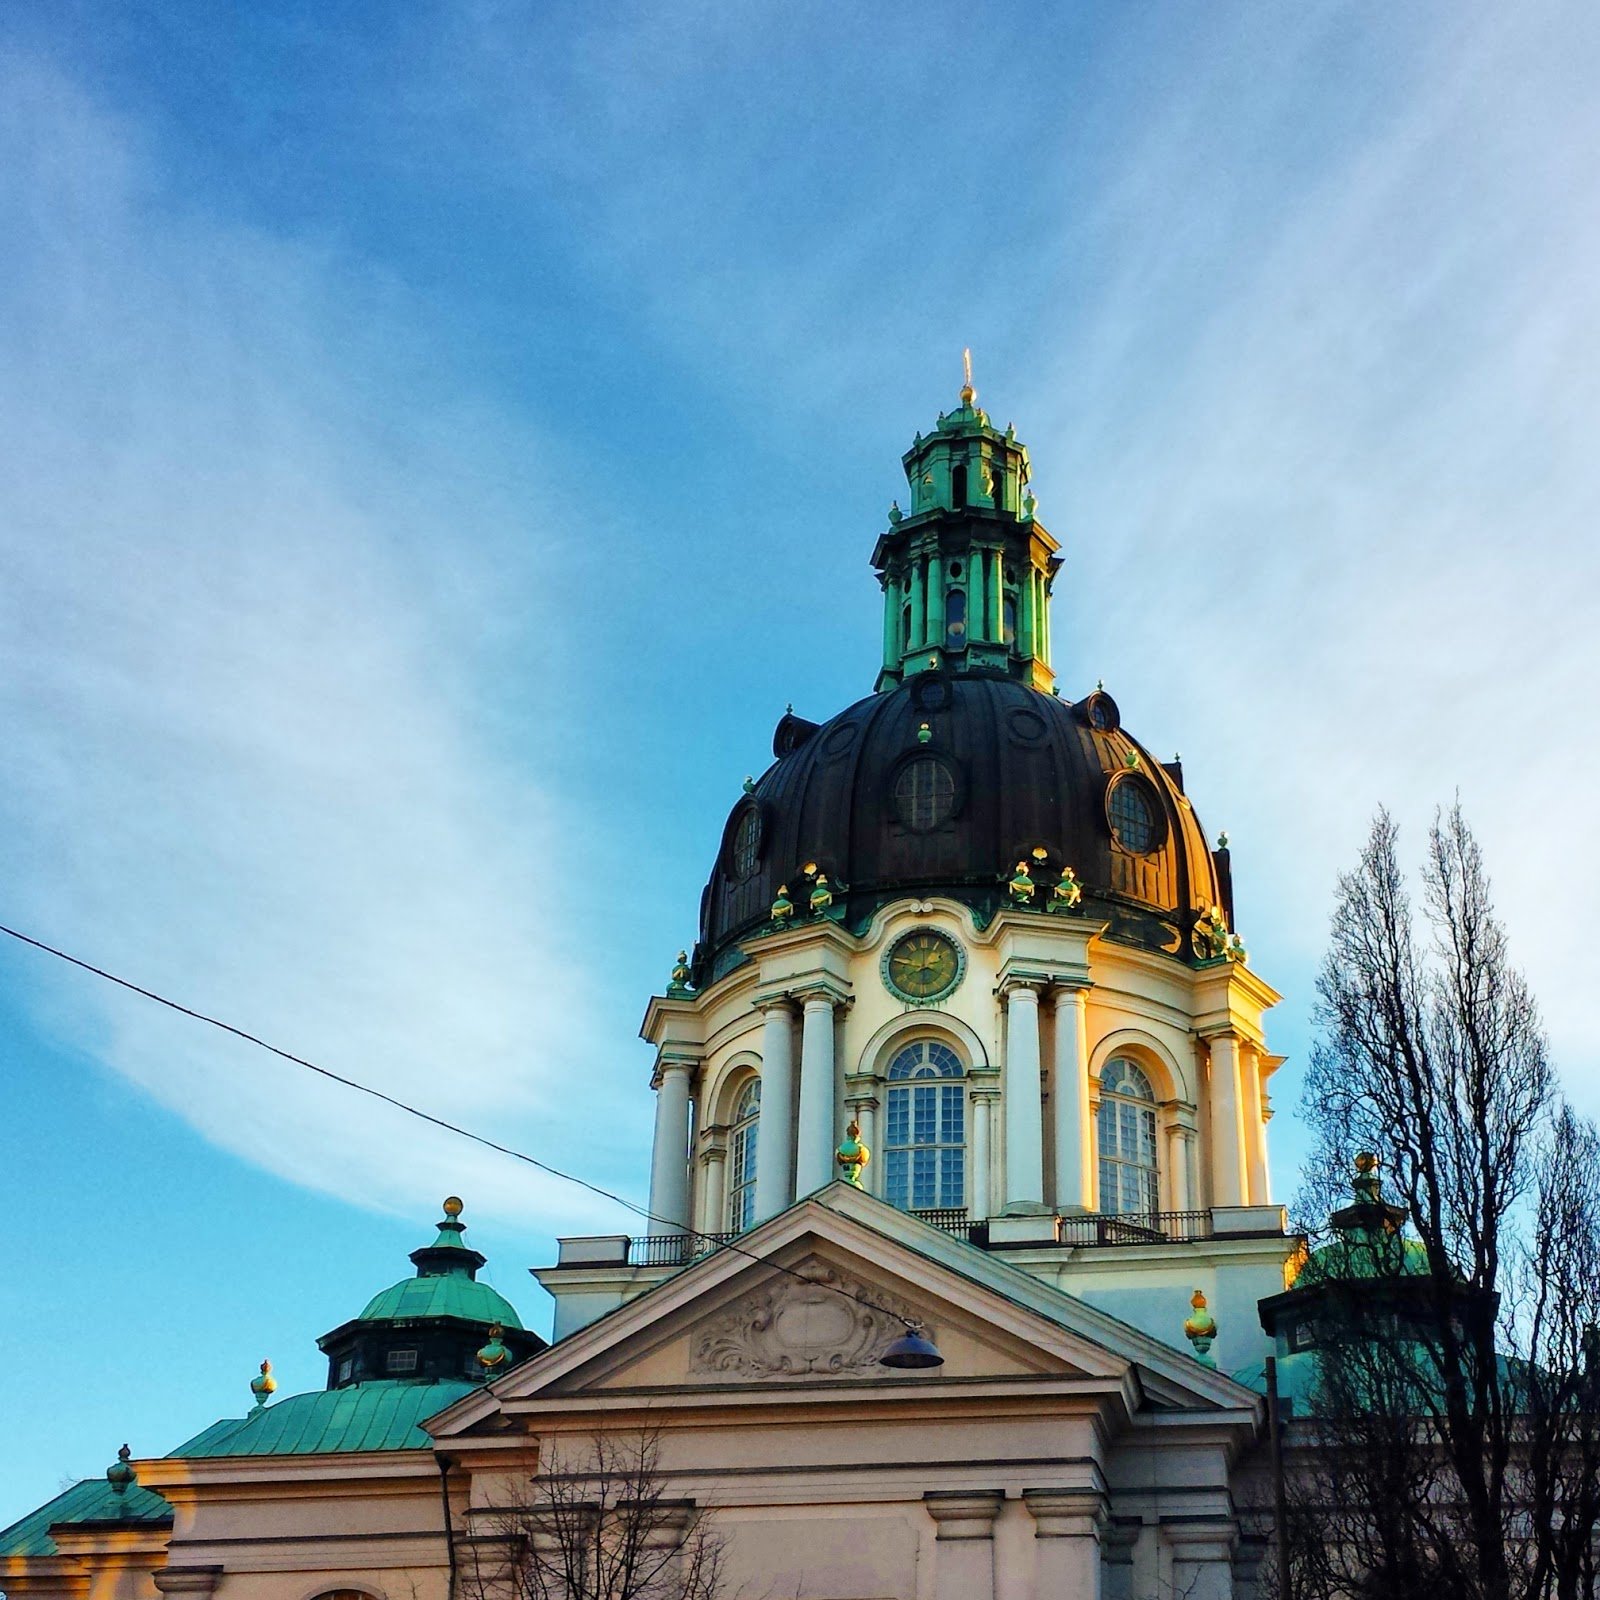 Gustav Vasa Kyrka, Stockholm, Sweden  |  Galvanizing spirits and getting things done on afeathery*nest  |  afeatherynest.com